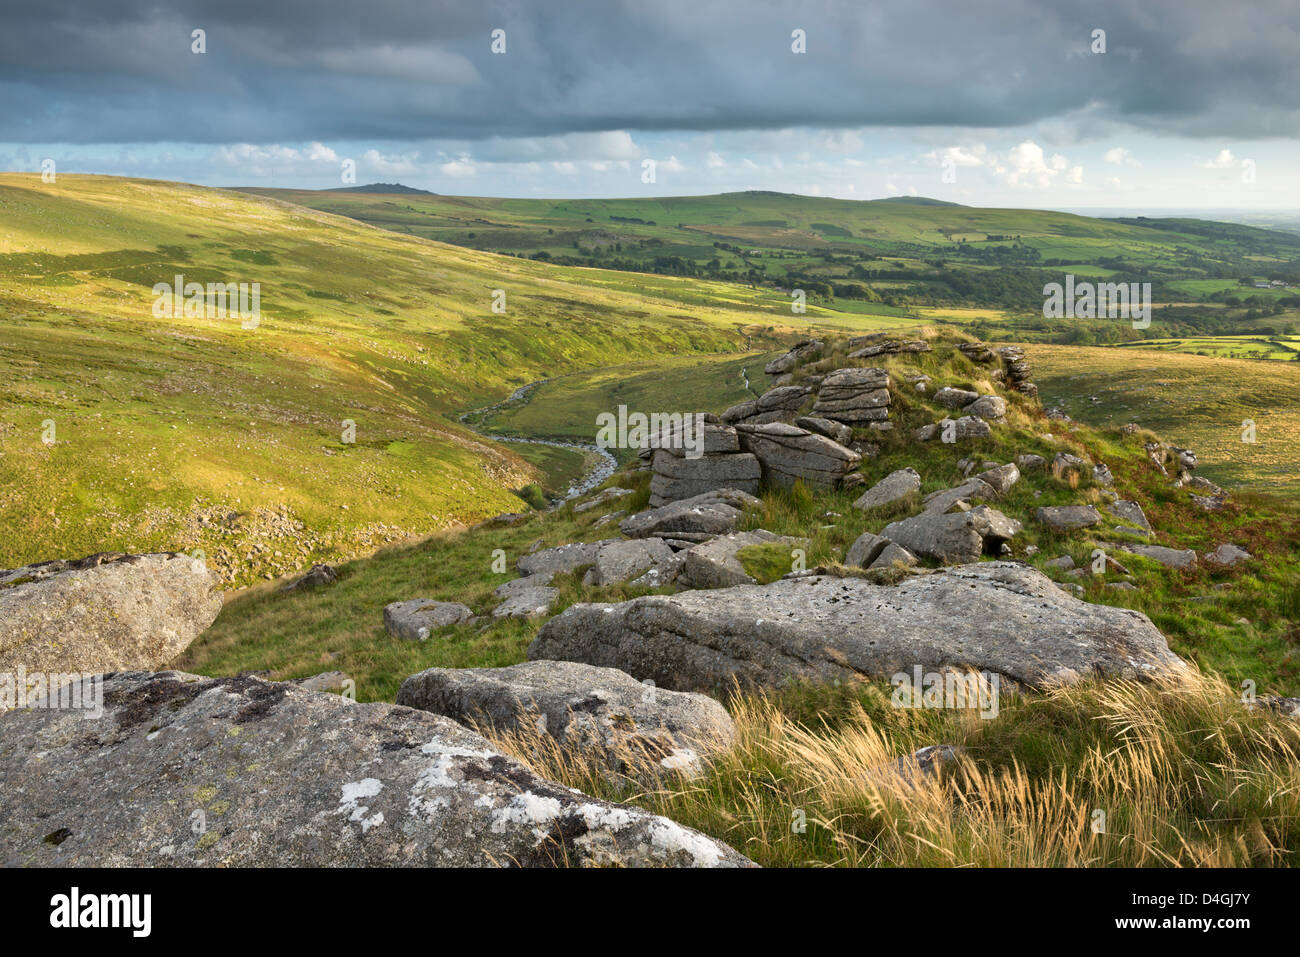 Tavy Cleave viewed from Ger Tor, Dartmoor, Devon, England. Summer (August) 2012 - Stock Image